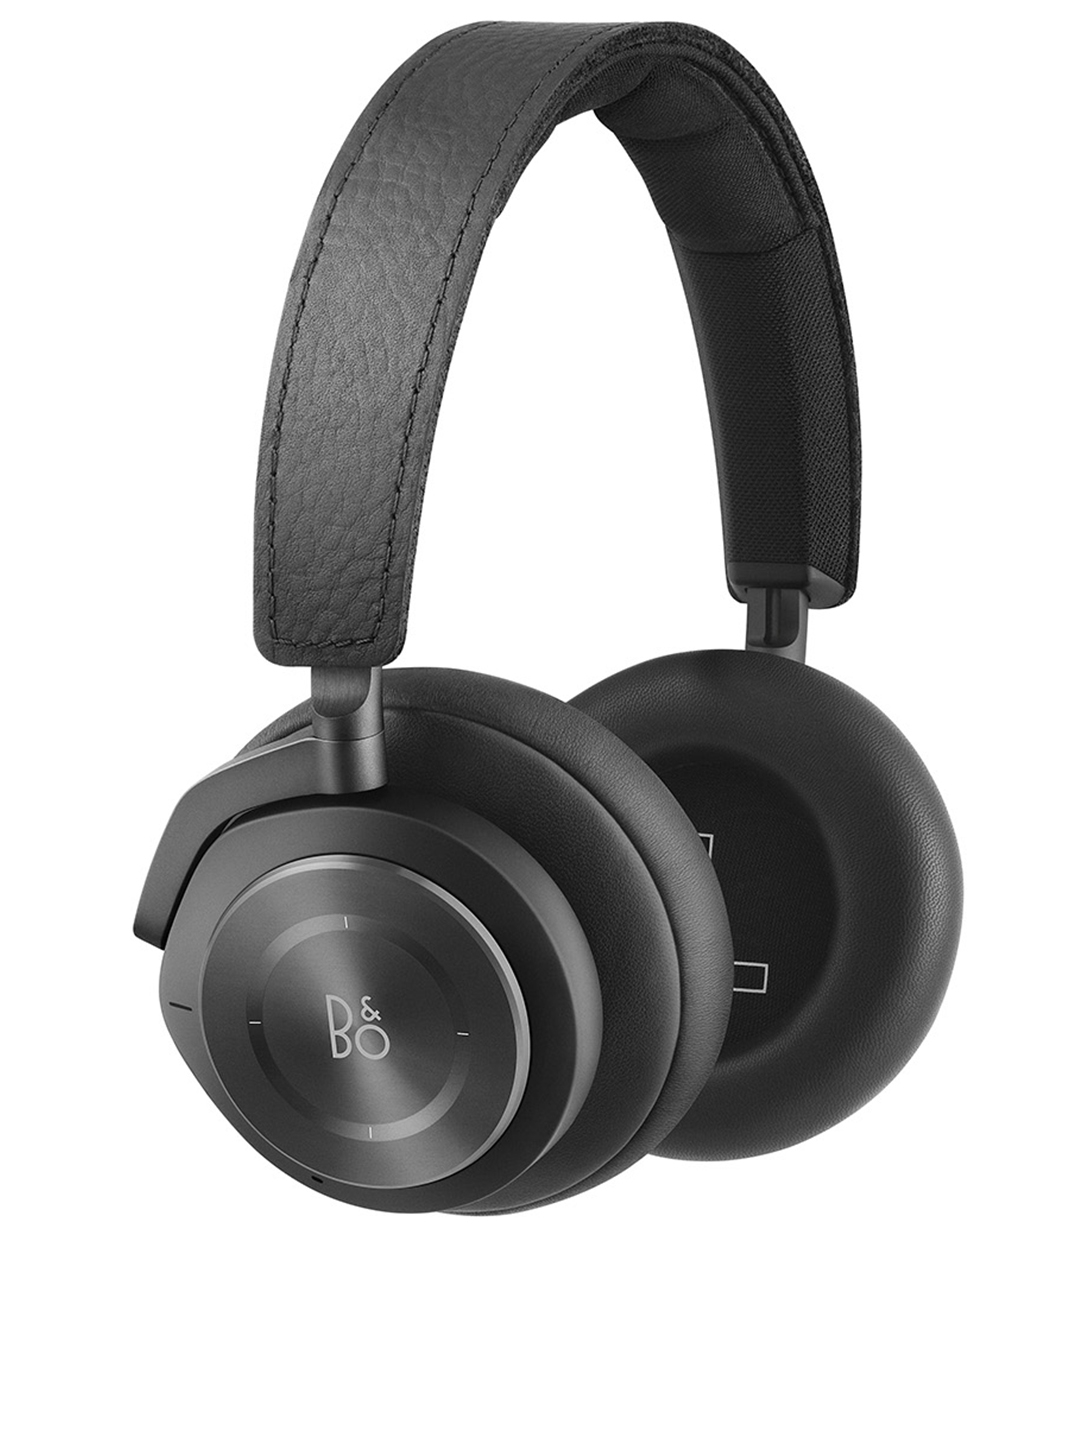 BANG & OLUFSEN Beoplay H9i Wireless Headphones Gifts Black